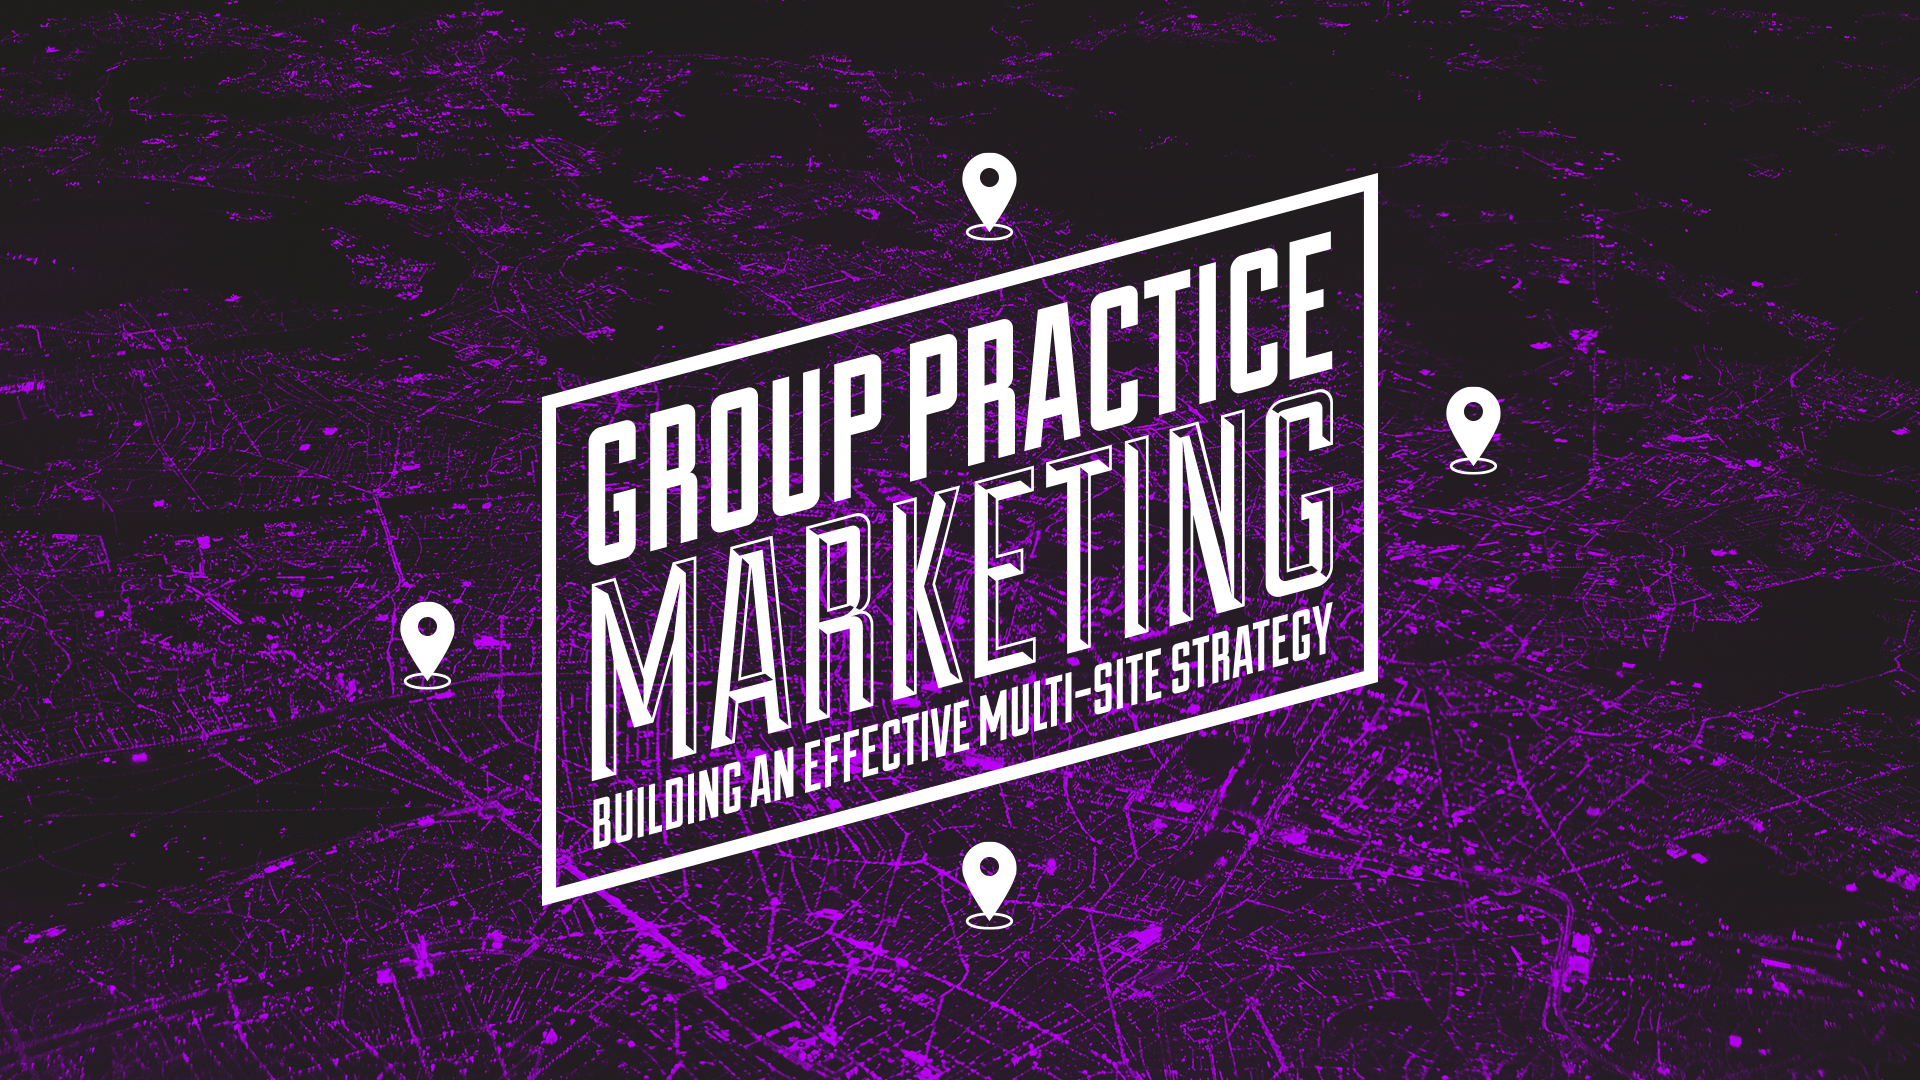 Group Practice Marketing